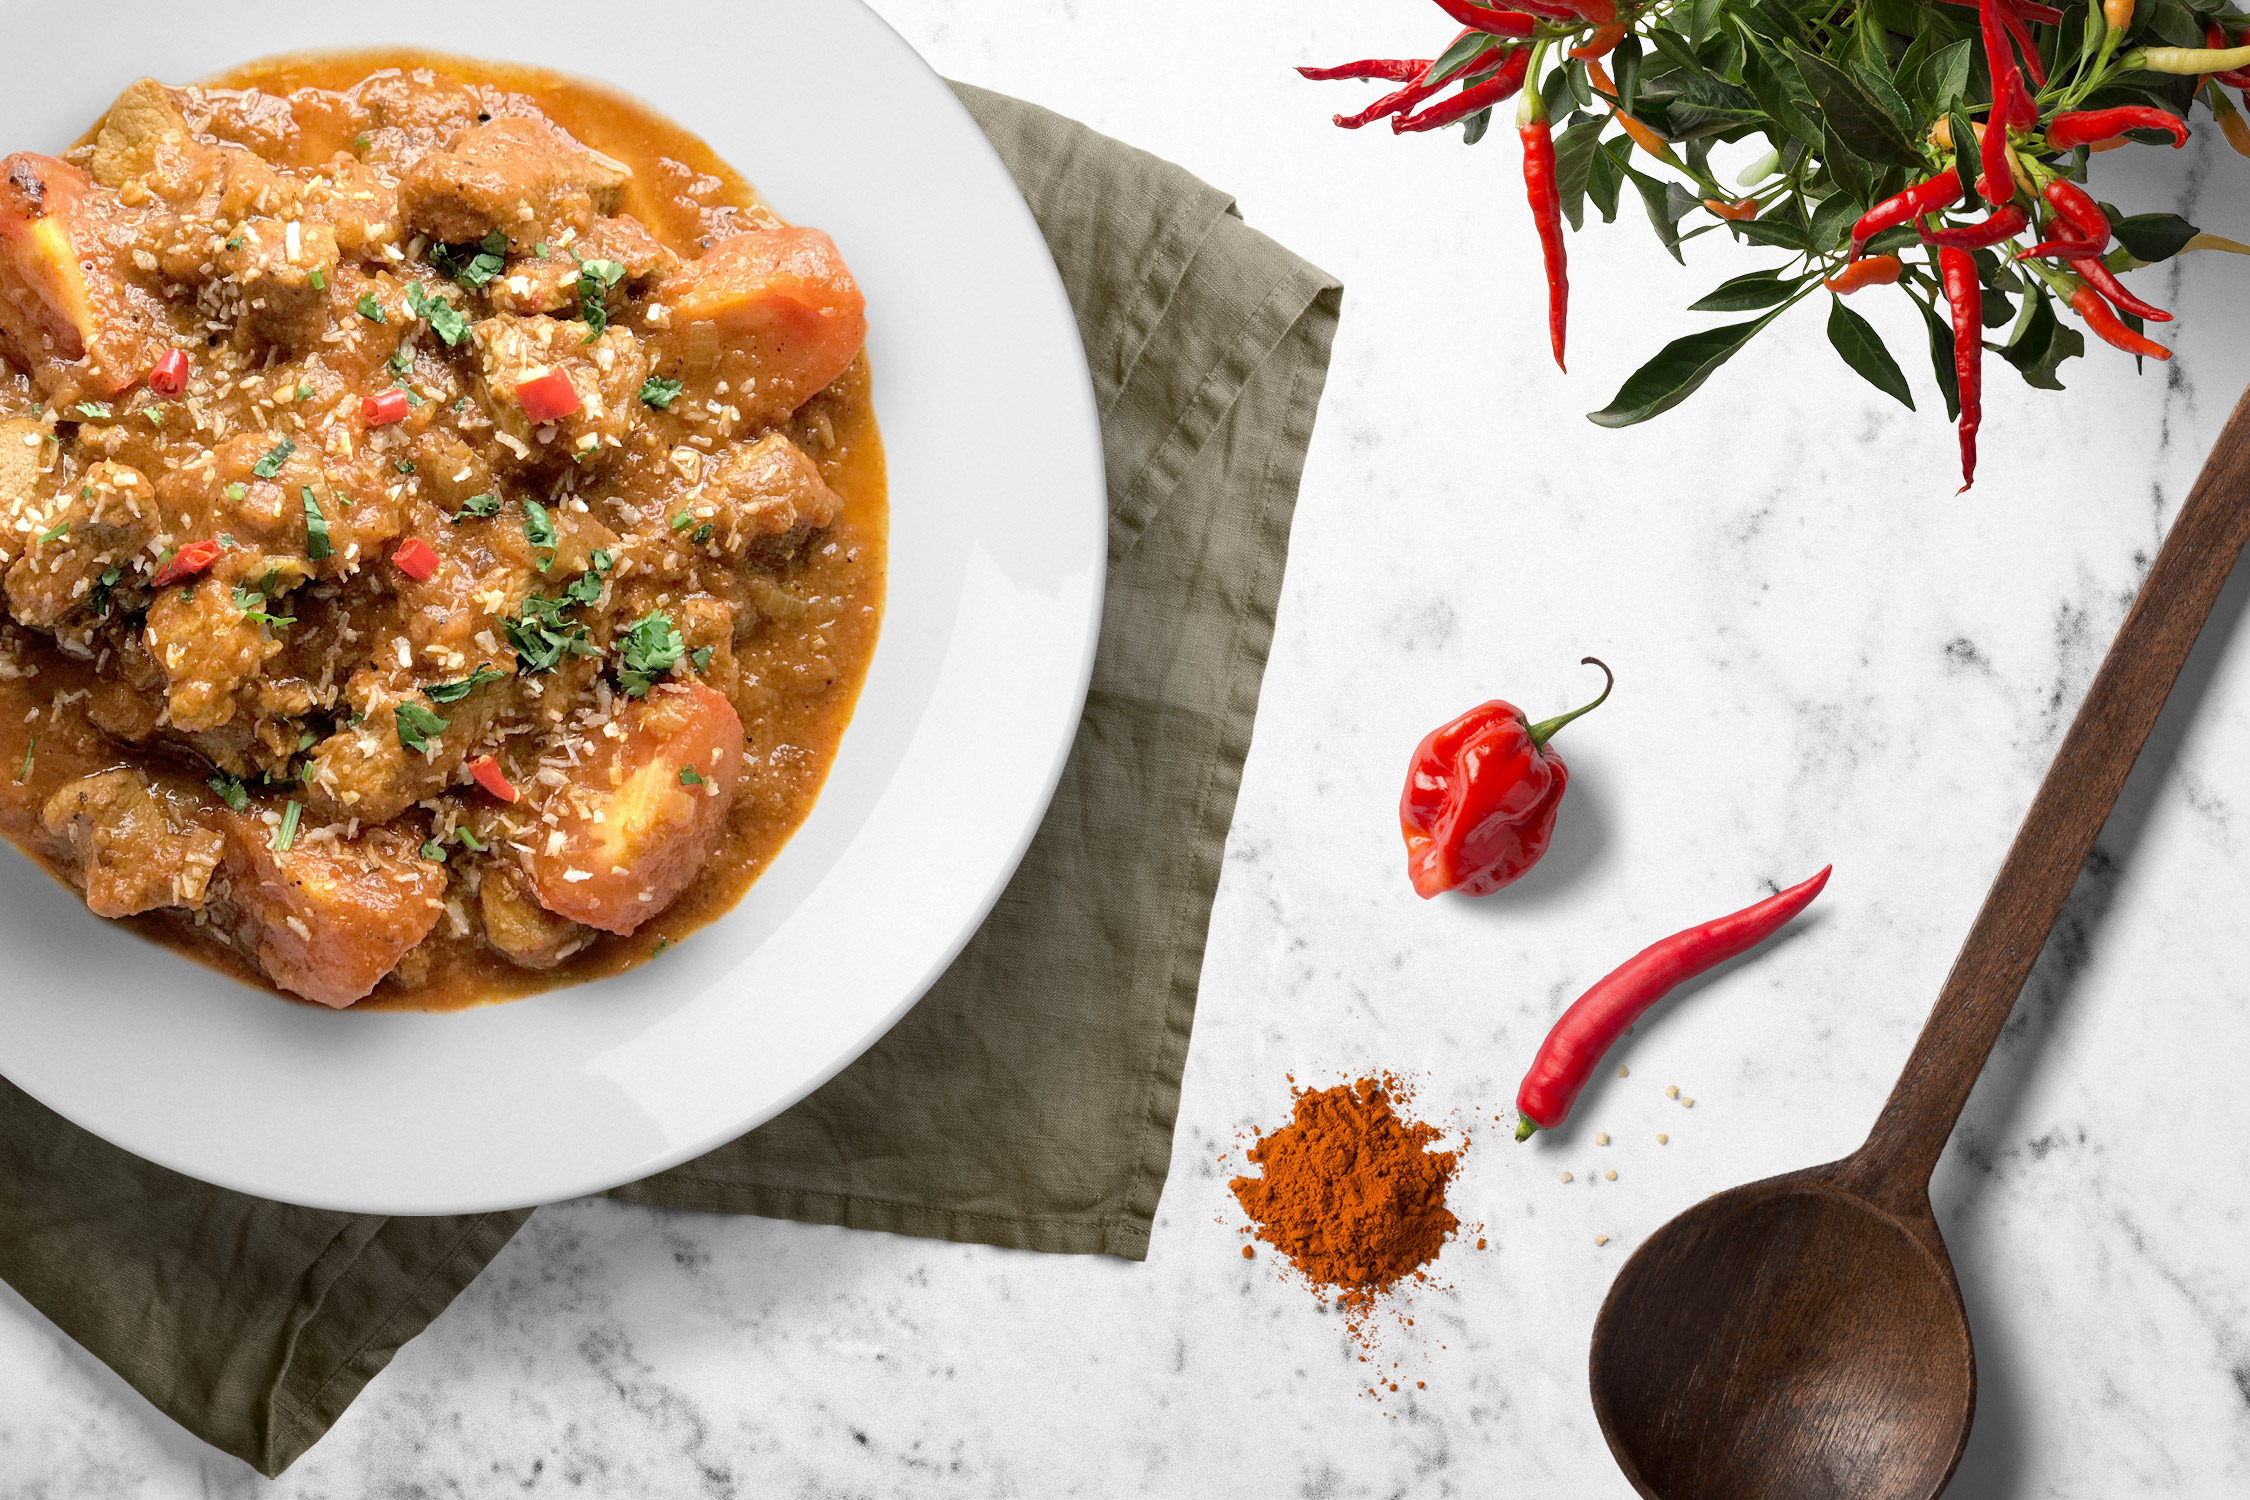 Cooking with Spices - If cooking with spice mixes is new for you, check out our easy guide and Secret Sauce recipe, the basis for all our delicious spice mix recipes.